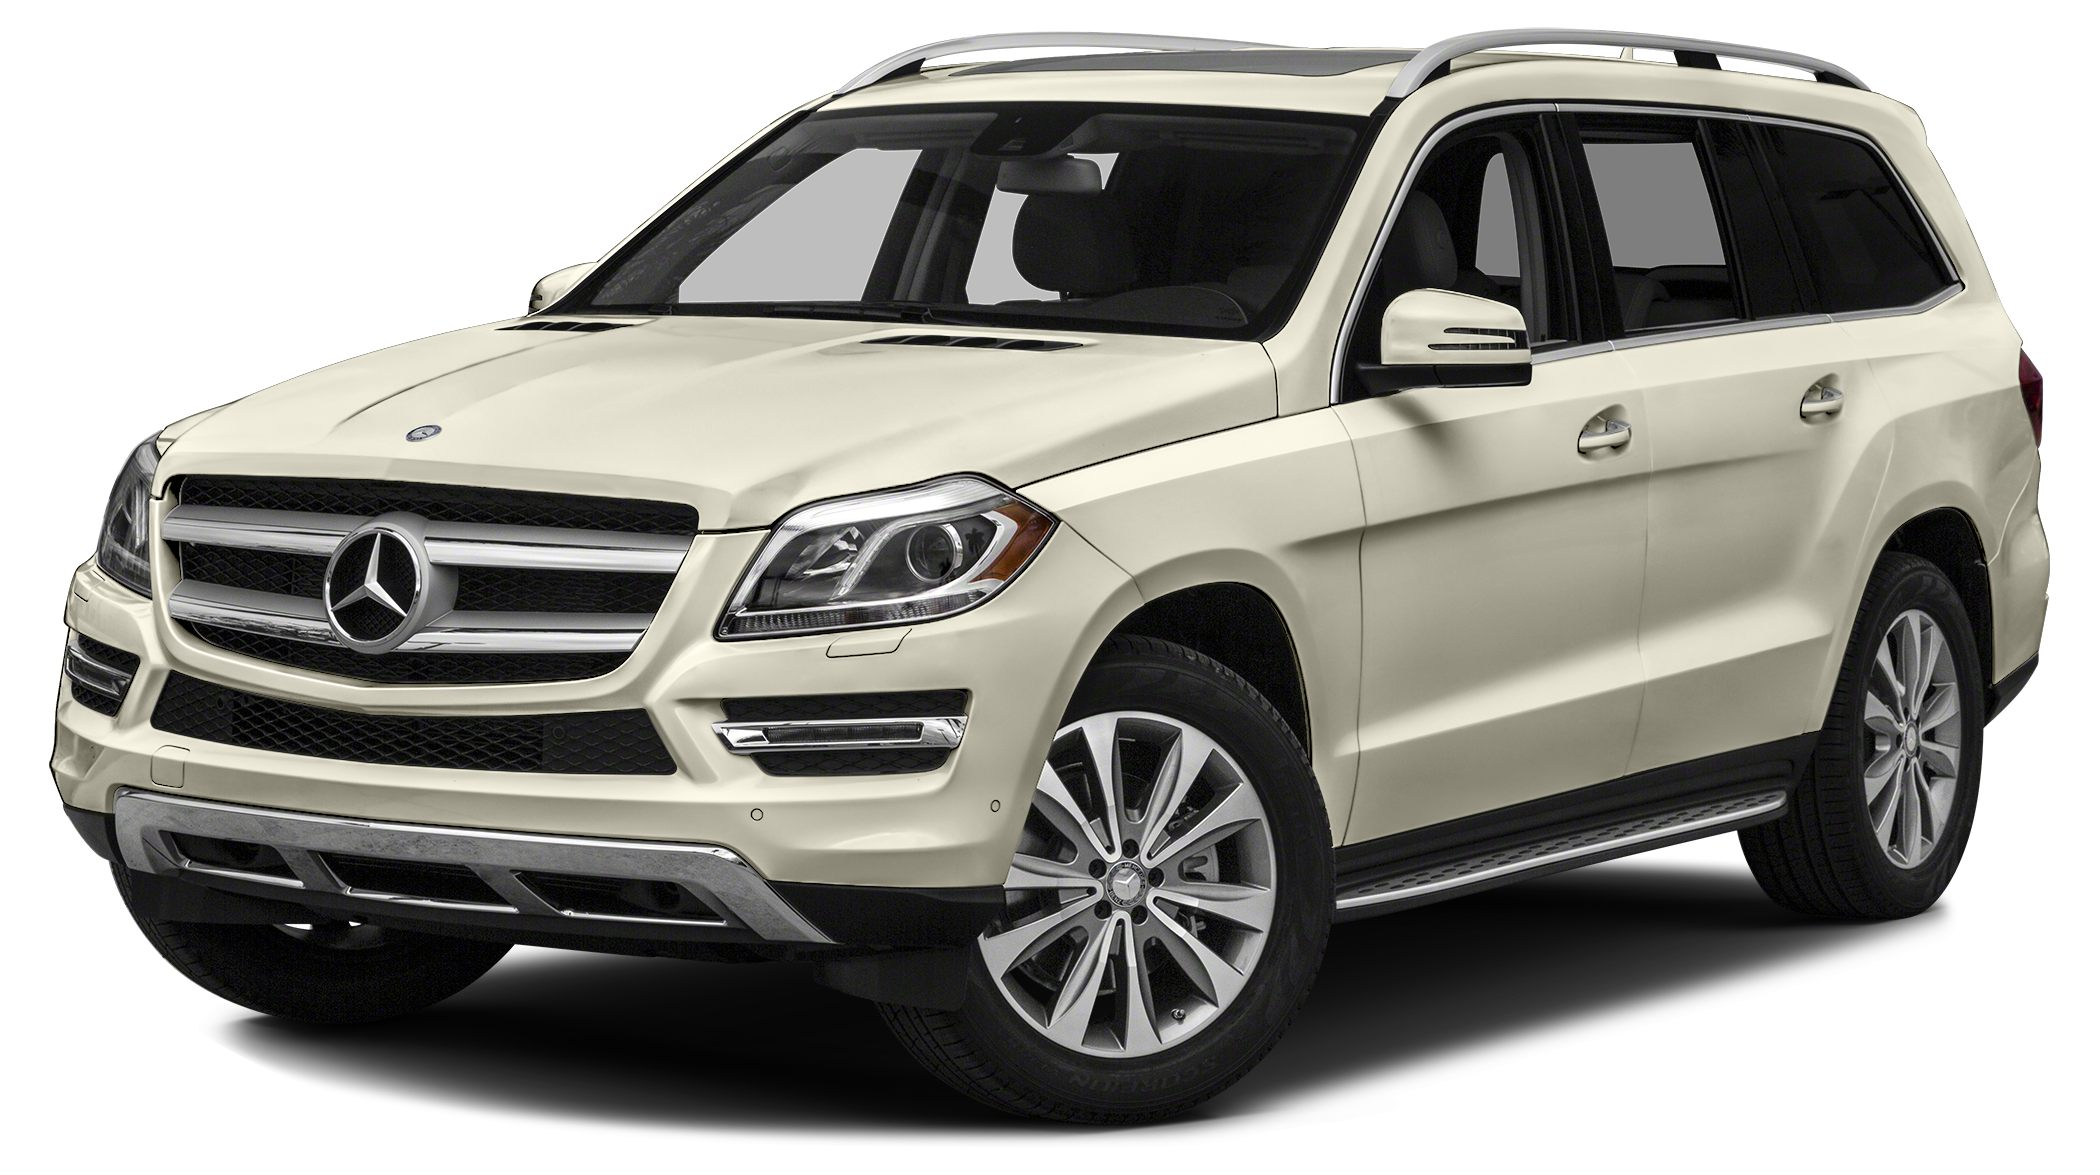 2016 MERCEDES GL-Class GL450 4MATIC This 2016 GL450W4 is a Mercedes-Benz executive Brass Hat demo